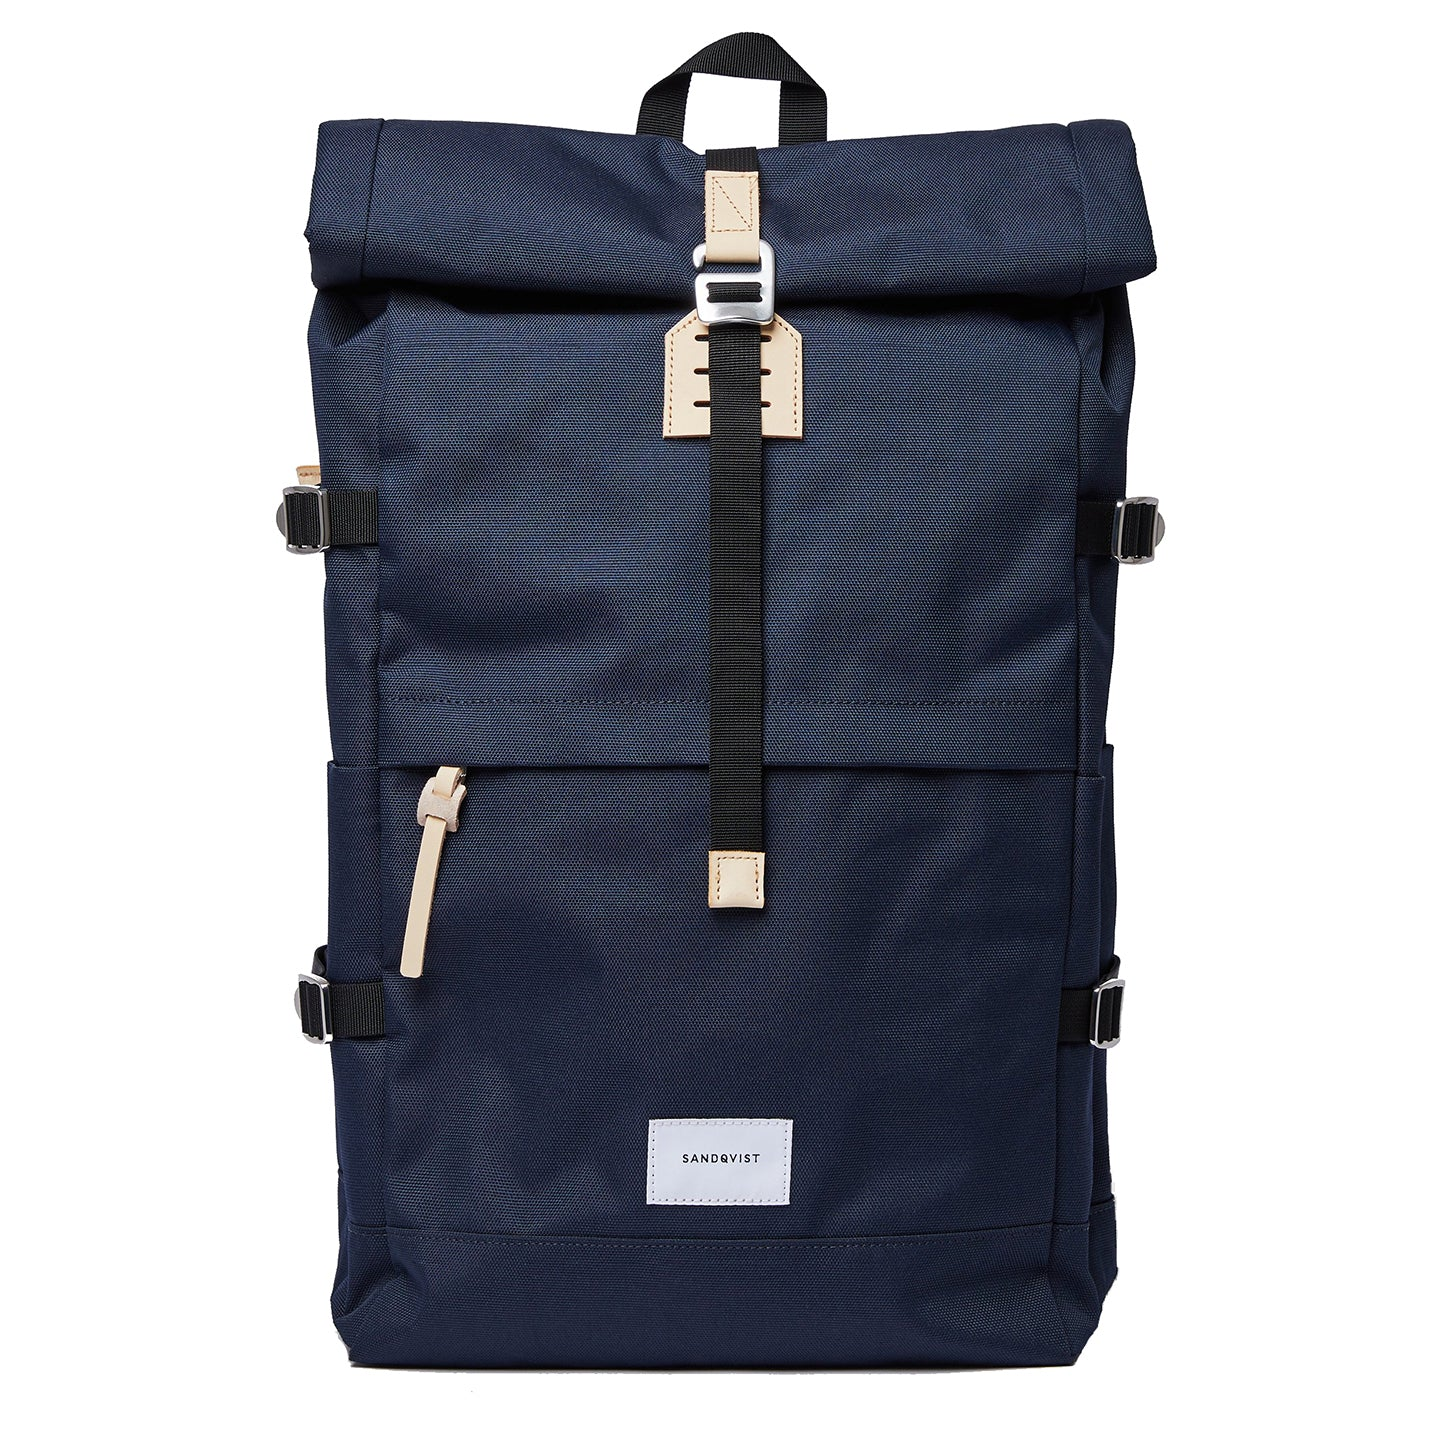 Sandqvist Bernt Backpack in Navy